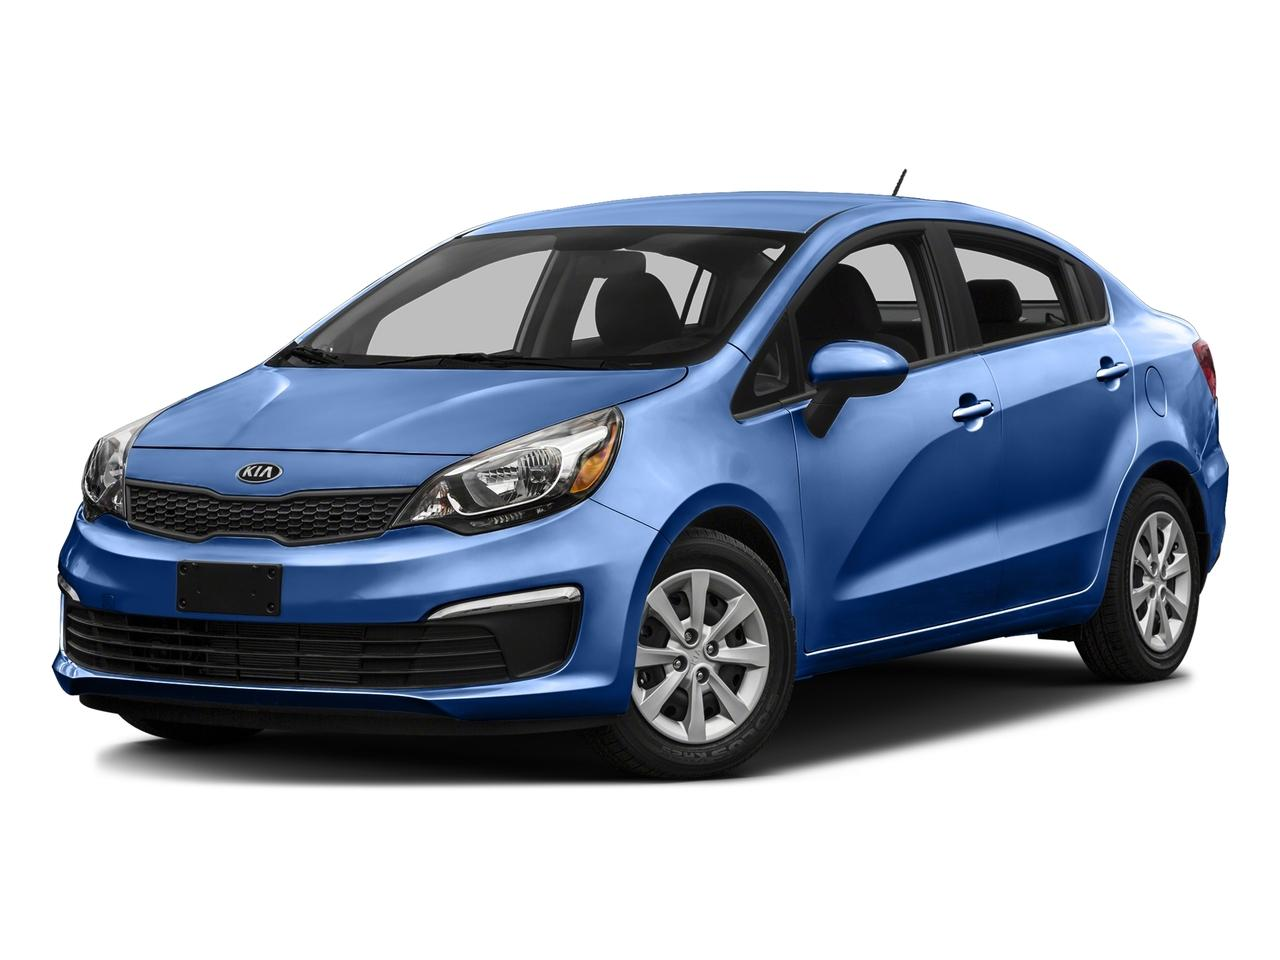 2016 Kia Rio Vehicle Photo in Oklahoma City, OK 73114